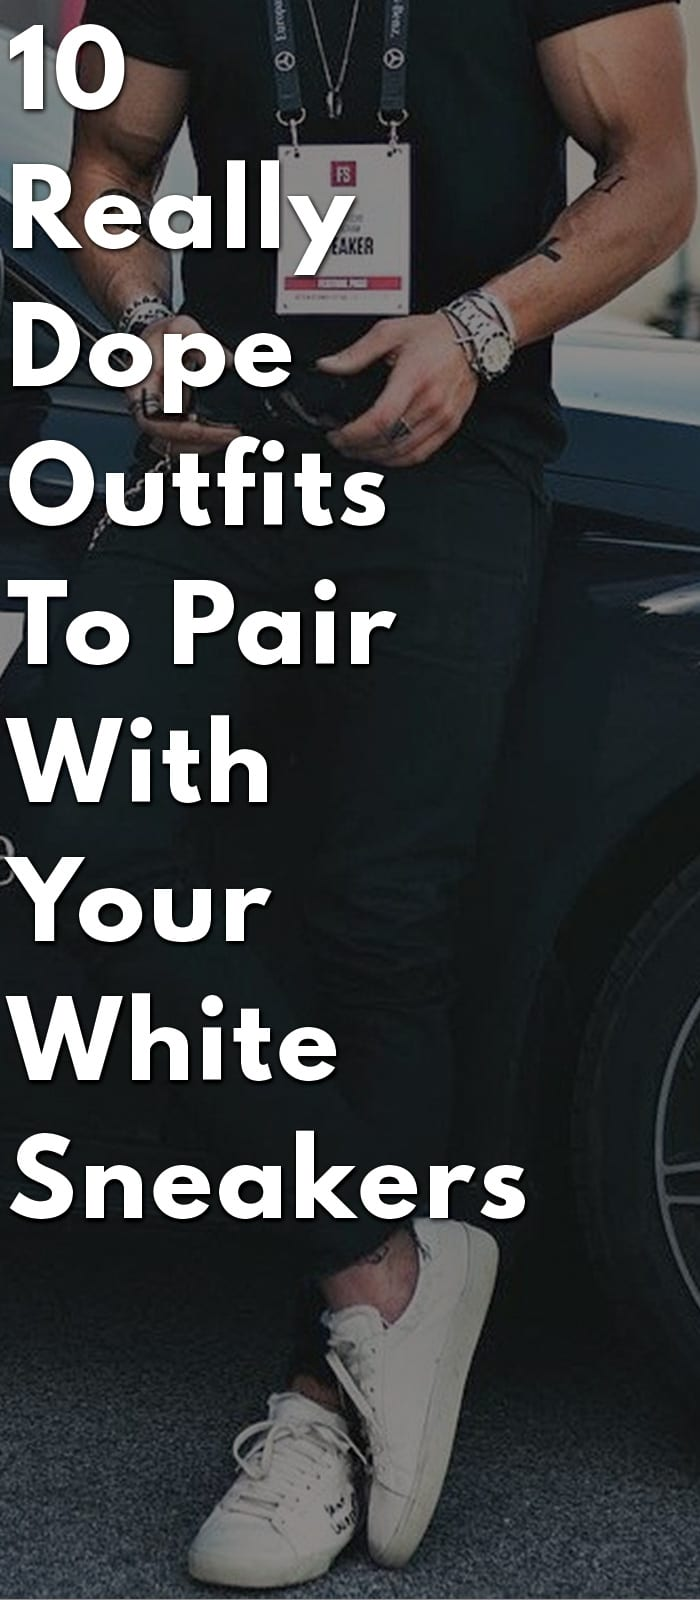 10-Really-Dope-Outfits-To-Pair-With-Your-White-Sneakers